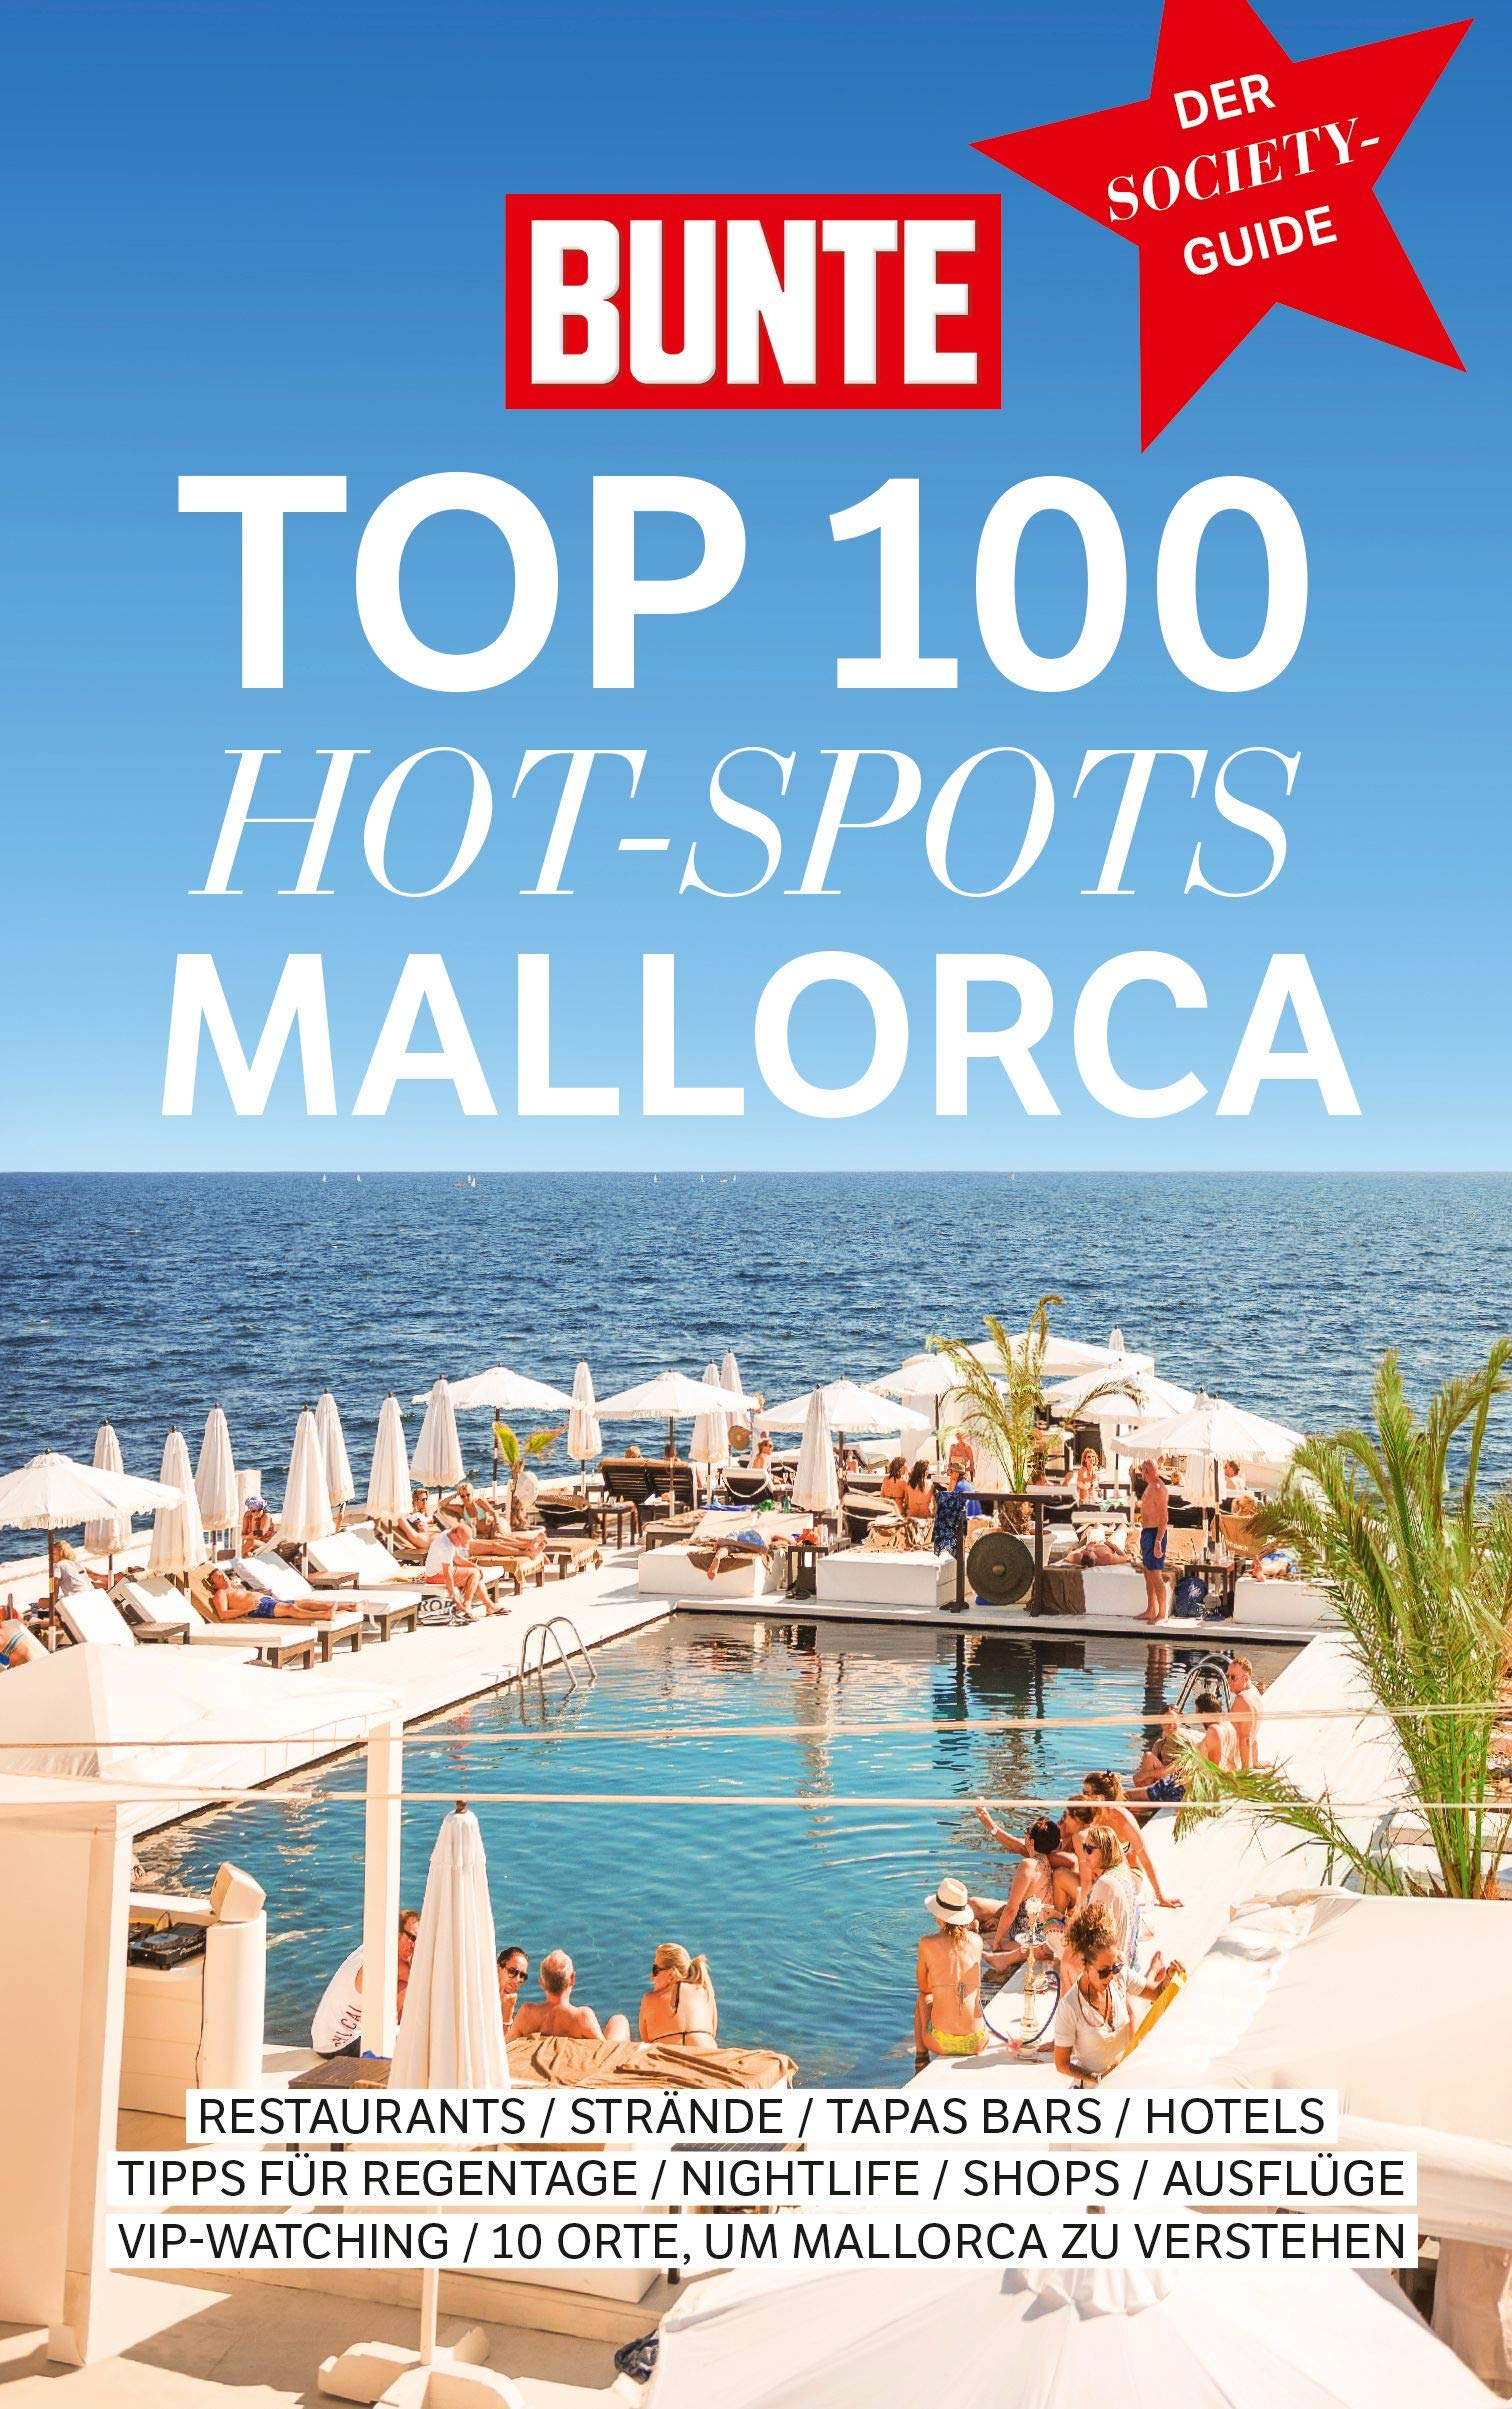 Luxus Apartment Mallorca Bunte Top 100 Hot-spots mallorca - Magazin, Information ...